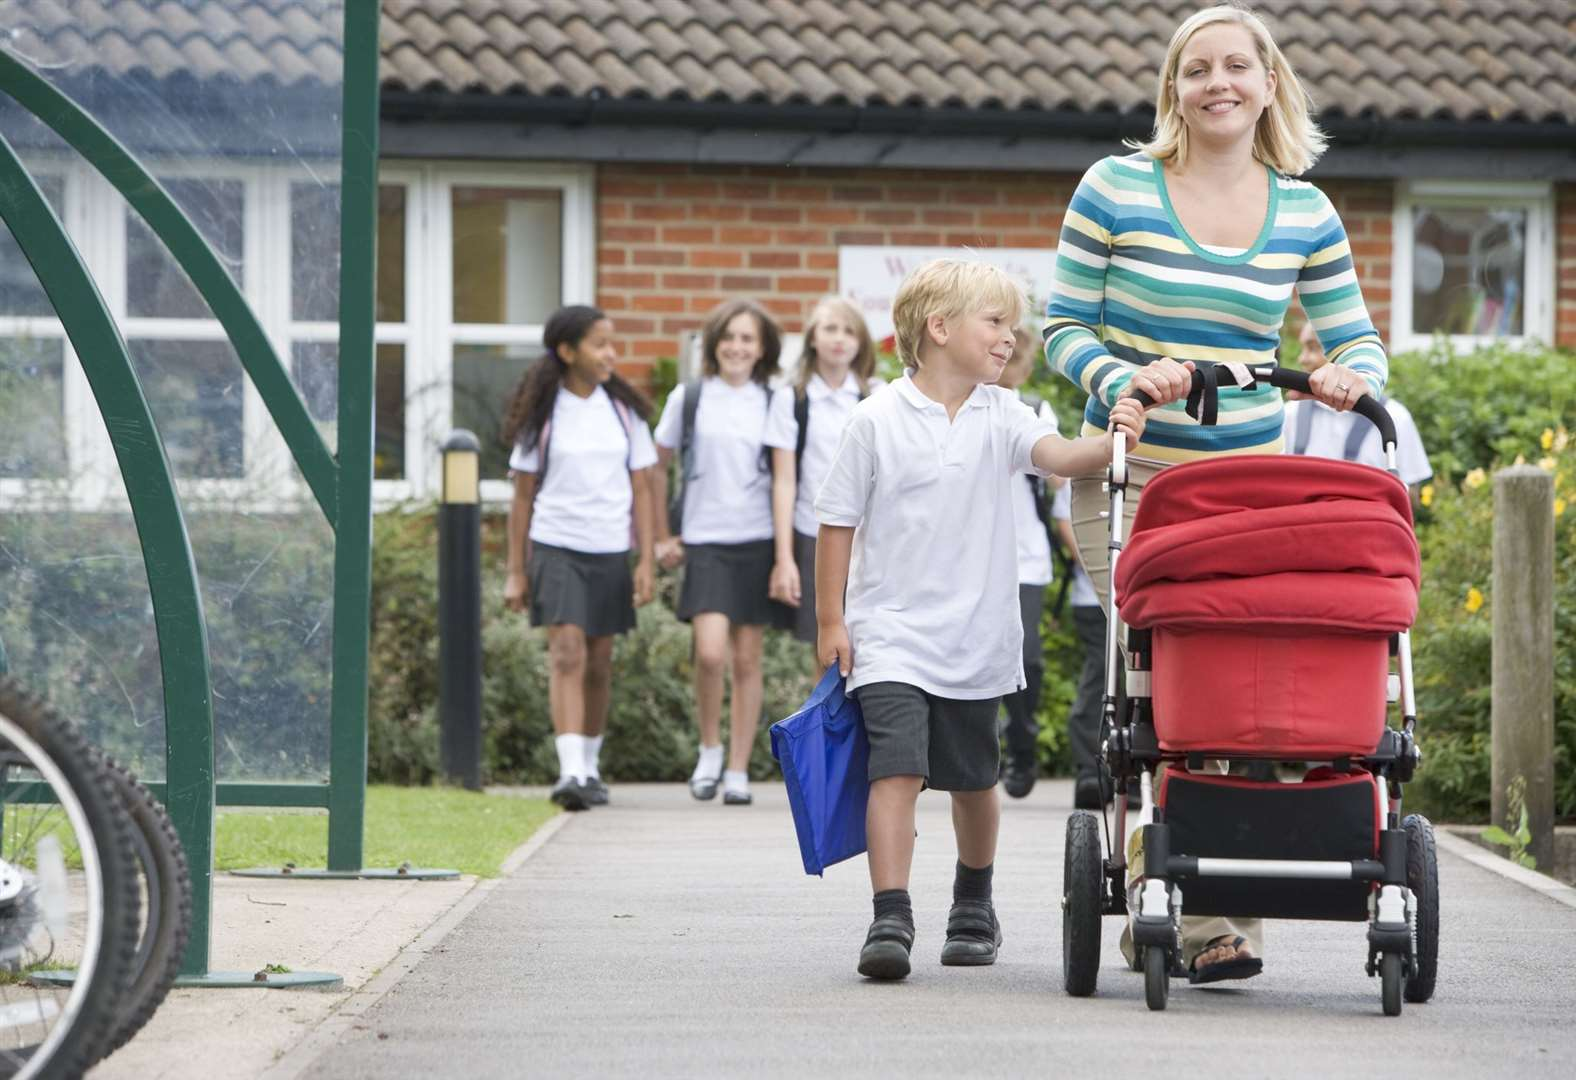 Brexit gridlock may leave children 'stranded' at school